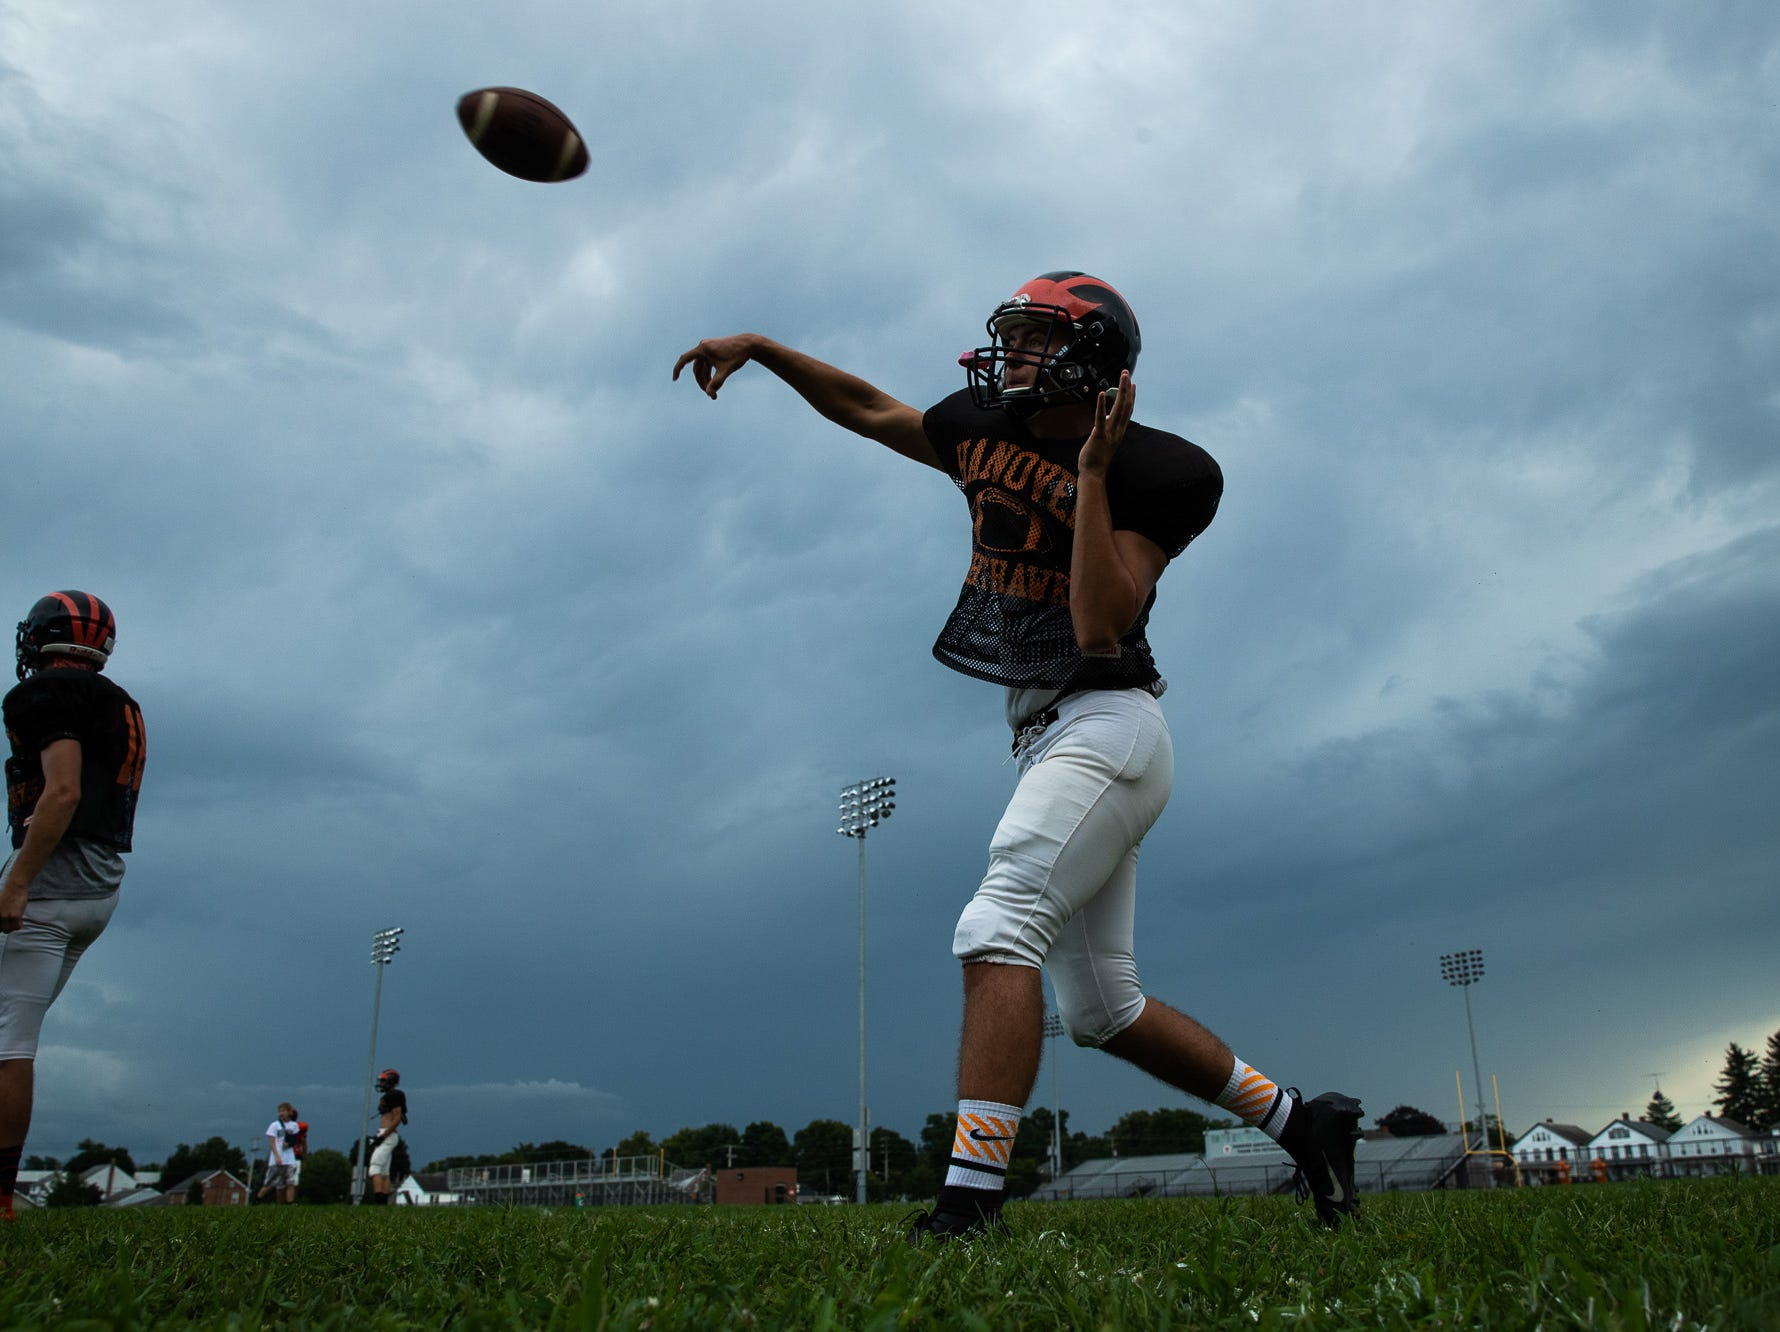 The Hanover High School football team practices on the first day of fall sports practice, Monday, Aug. 13, 2018, at the Sheppard-Meyers Stadium.